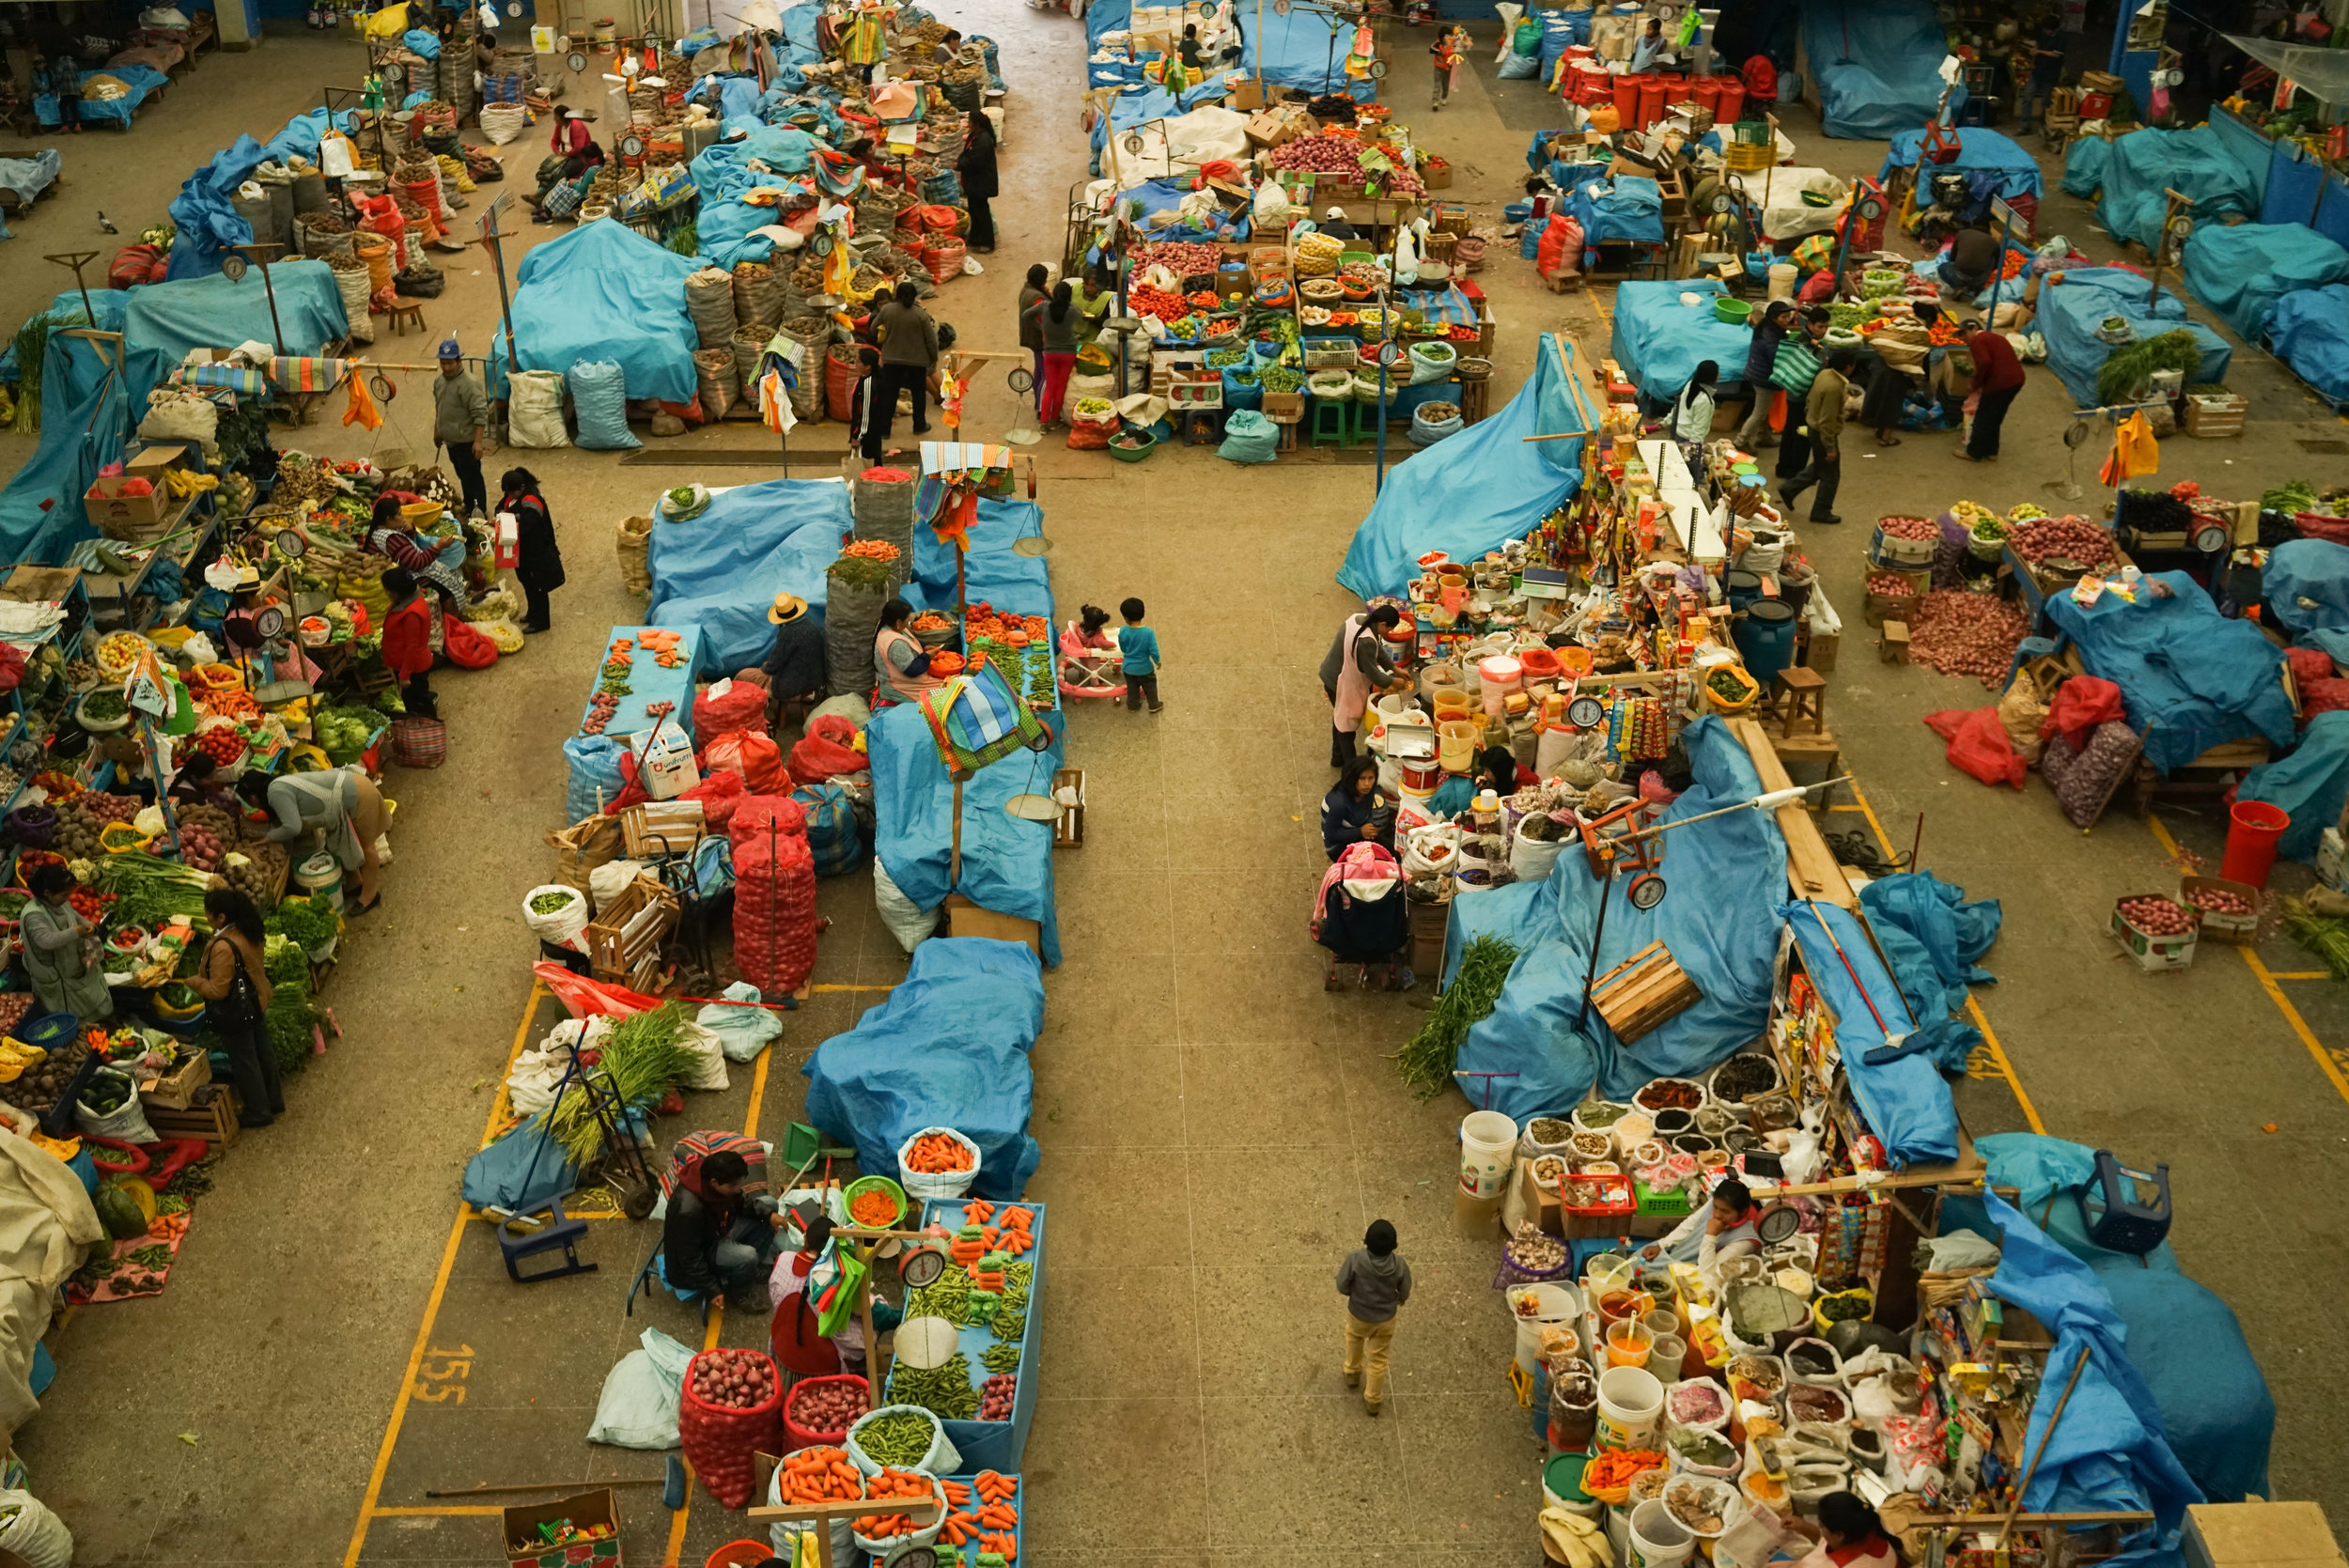 Above the Market. Urubamba, Cusco, Peru. January 2016